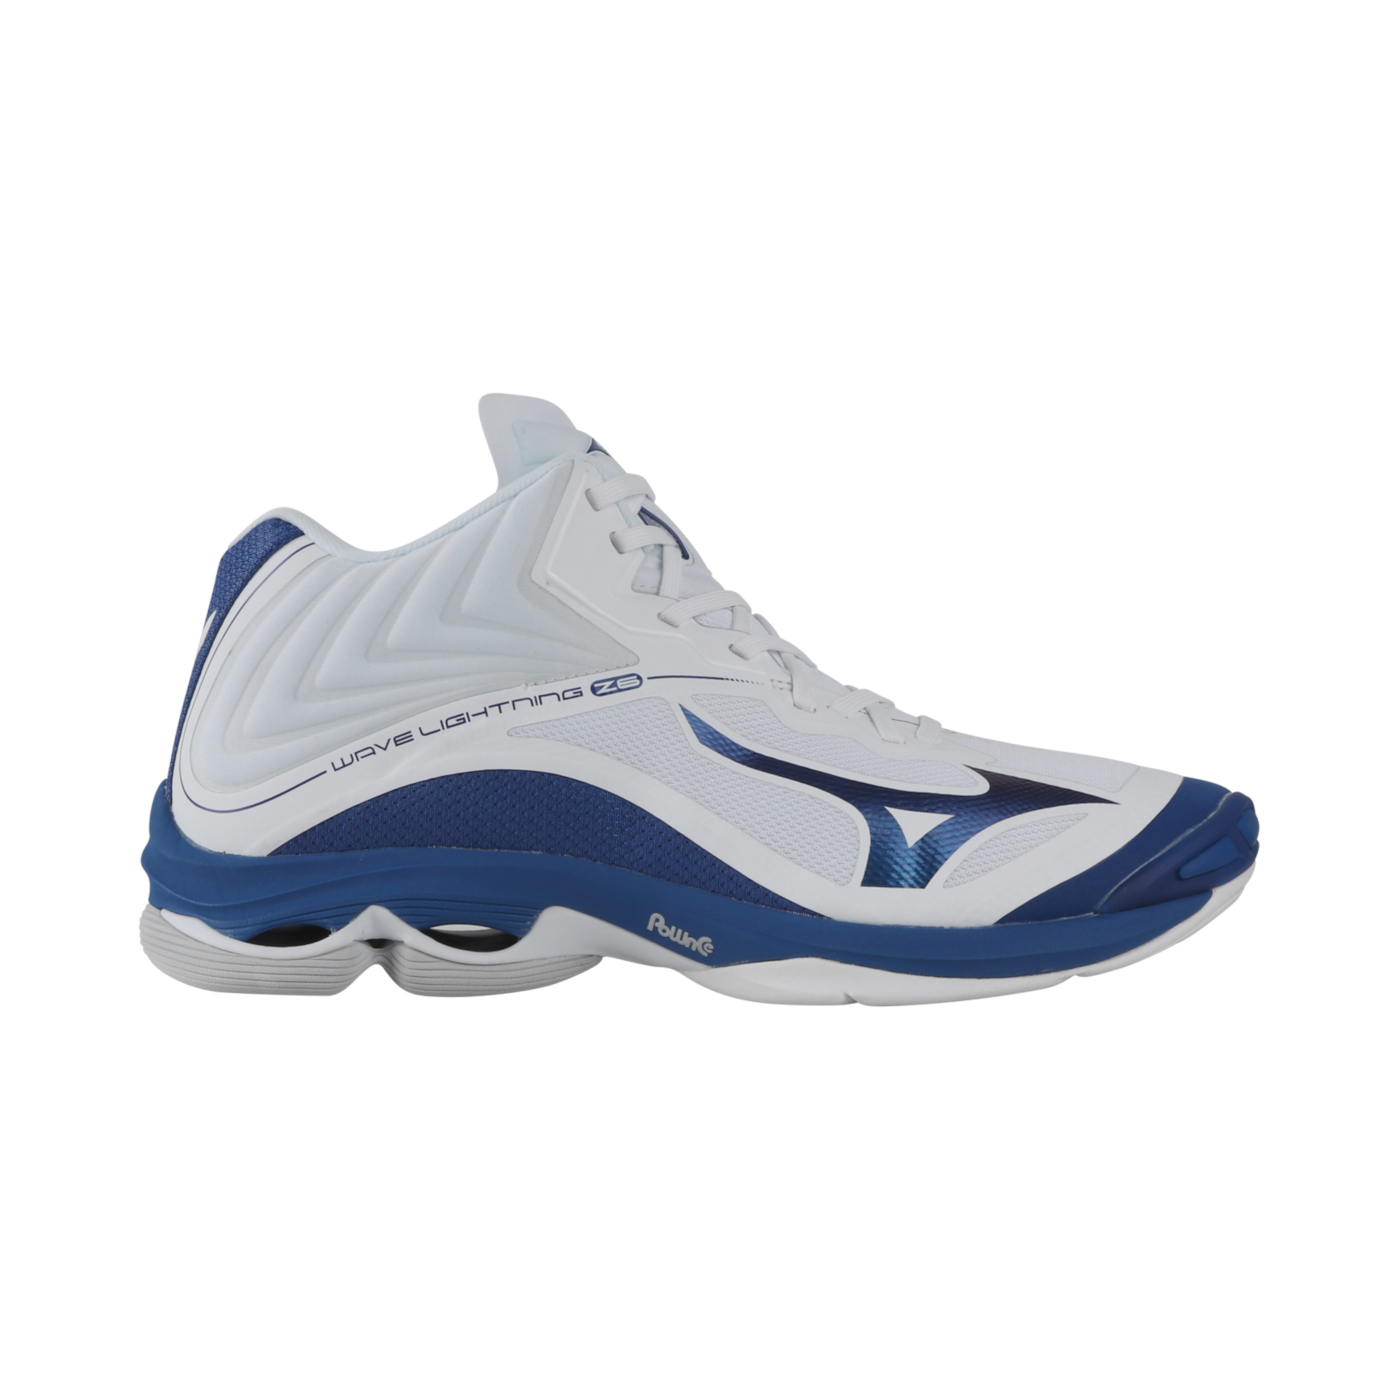 WAVE LIGHTNING Z6 MID-WHITE/10249 C/TRUE BLUE